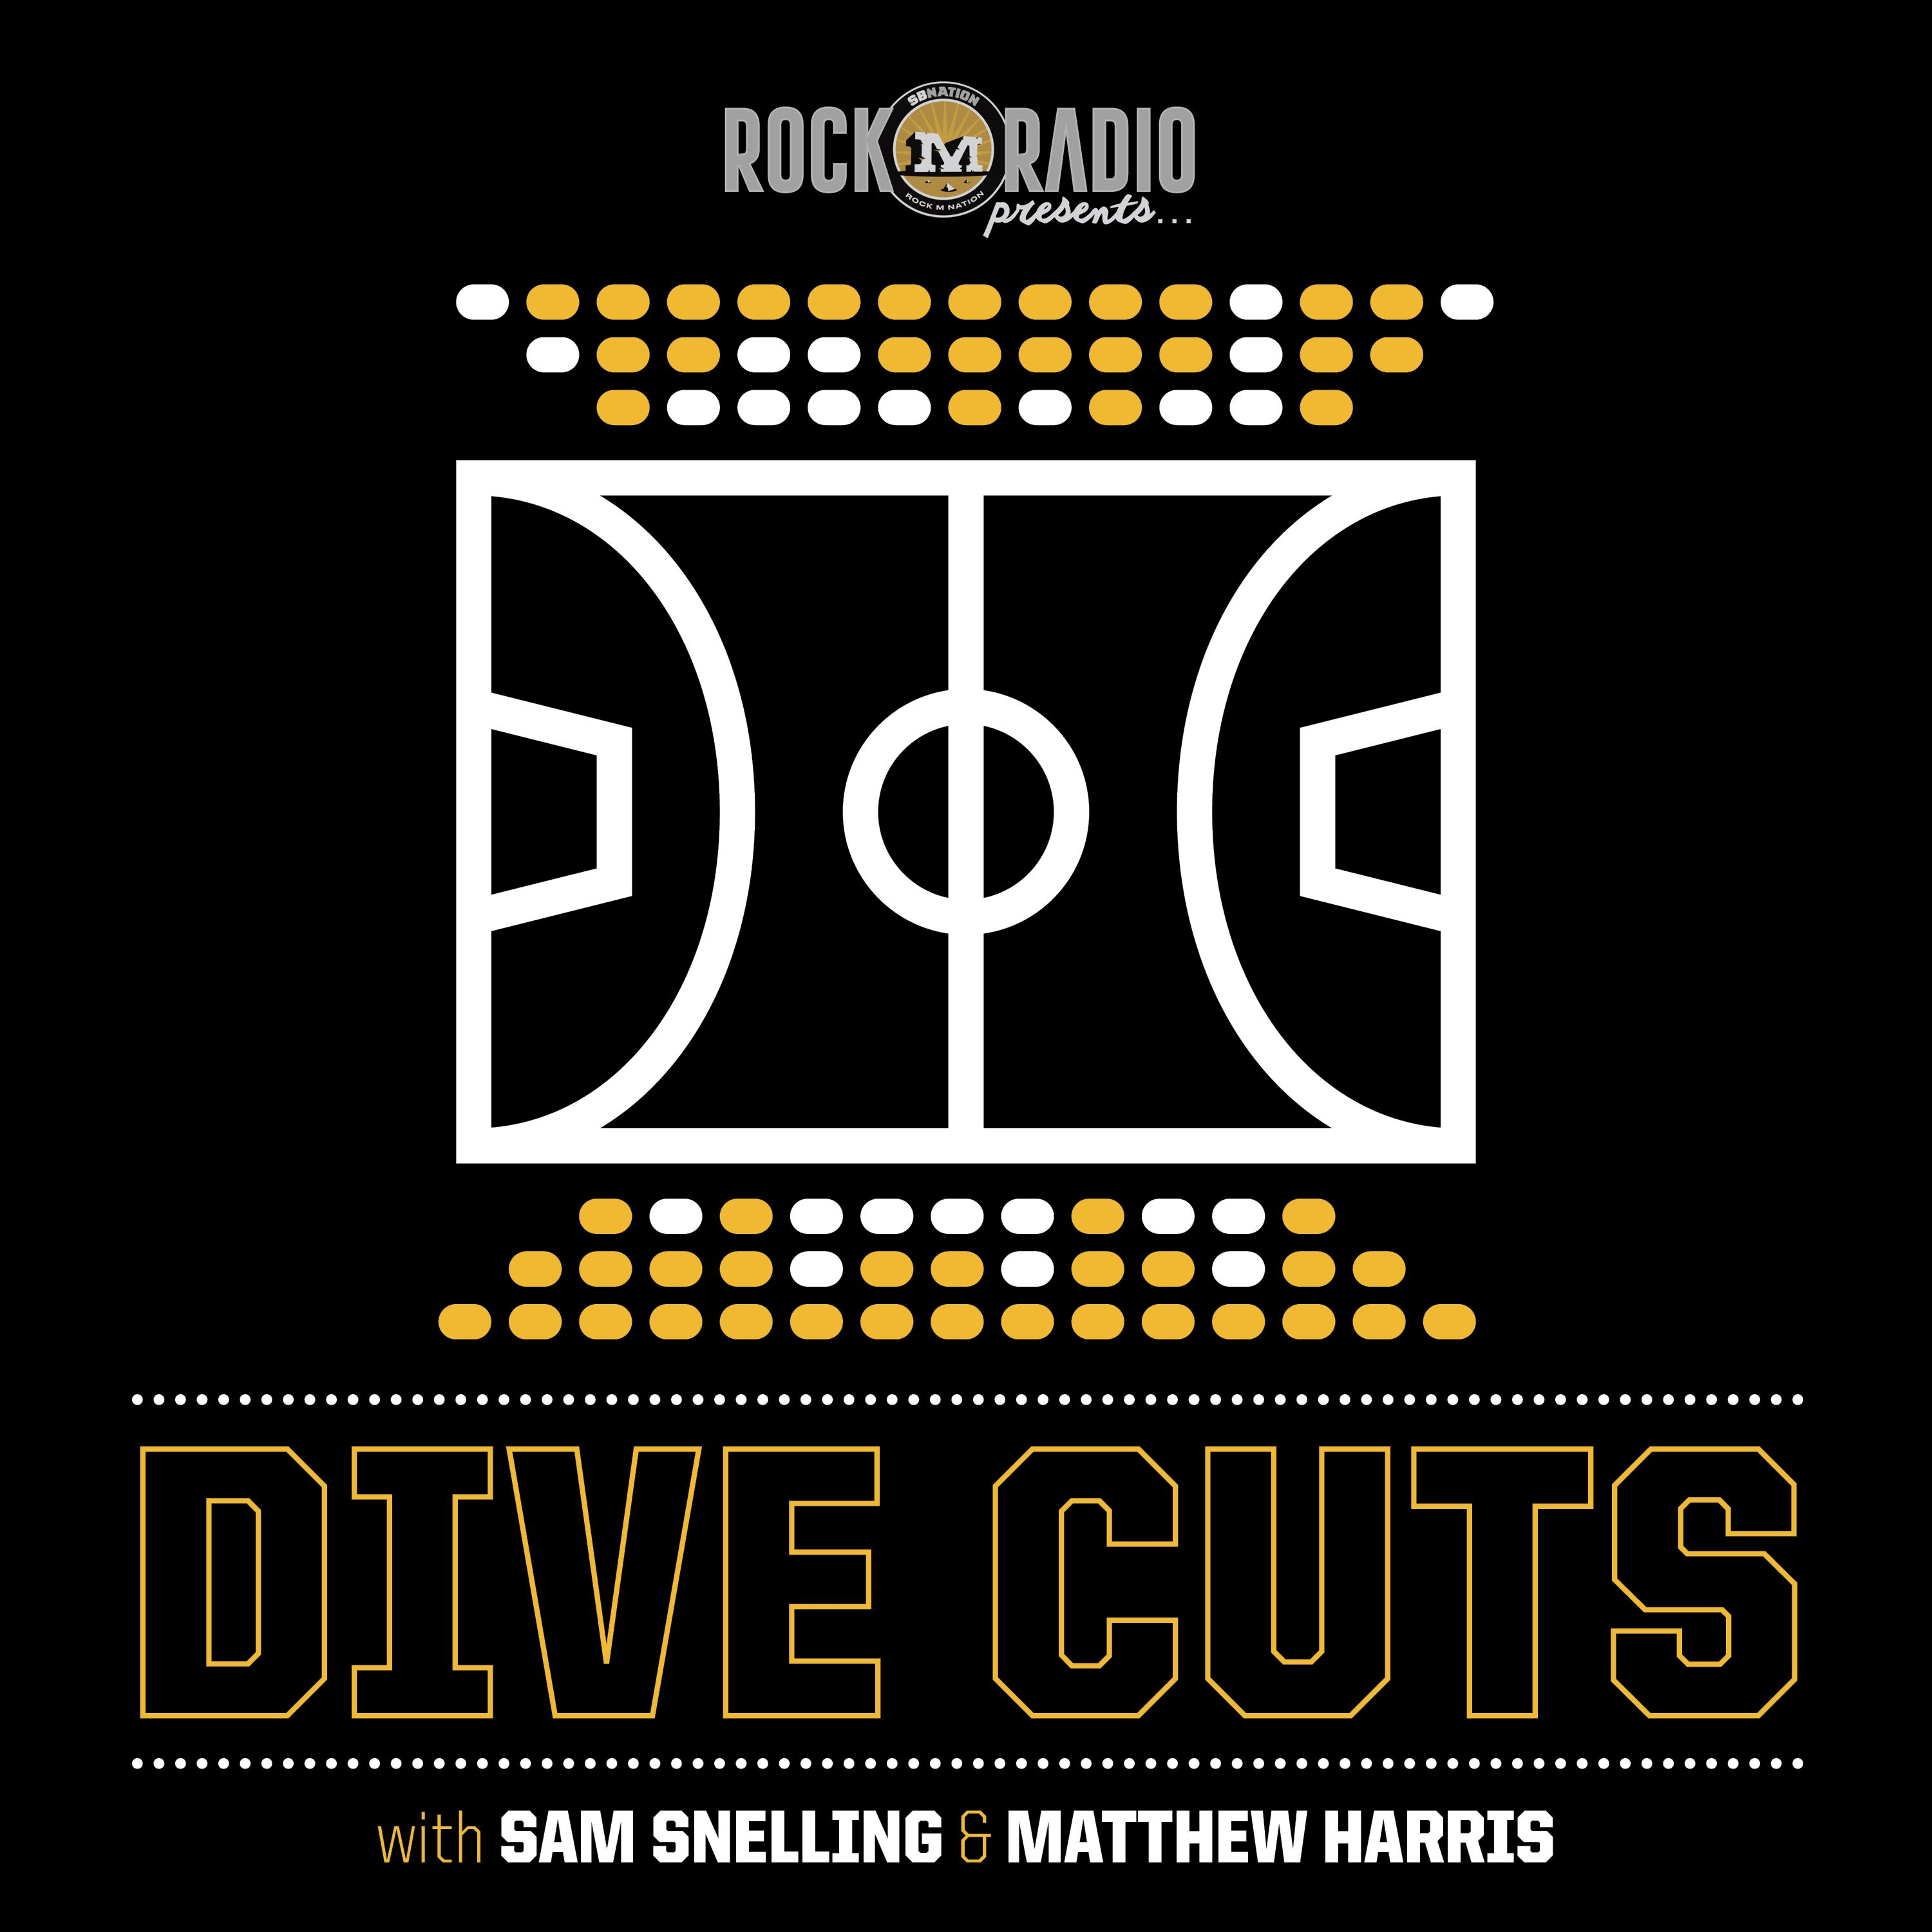 Dive Cuts with Sam Snelling and Matthew Harris Season 3 Episode 28